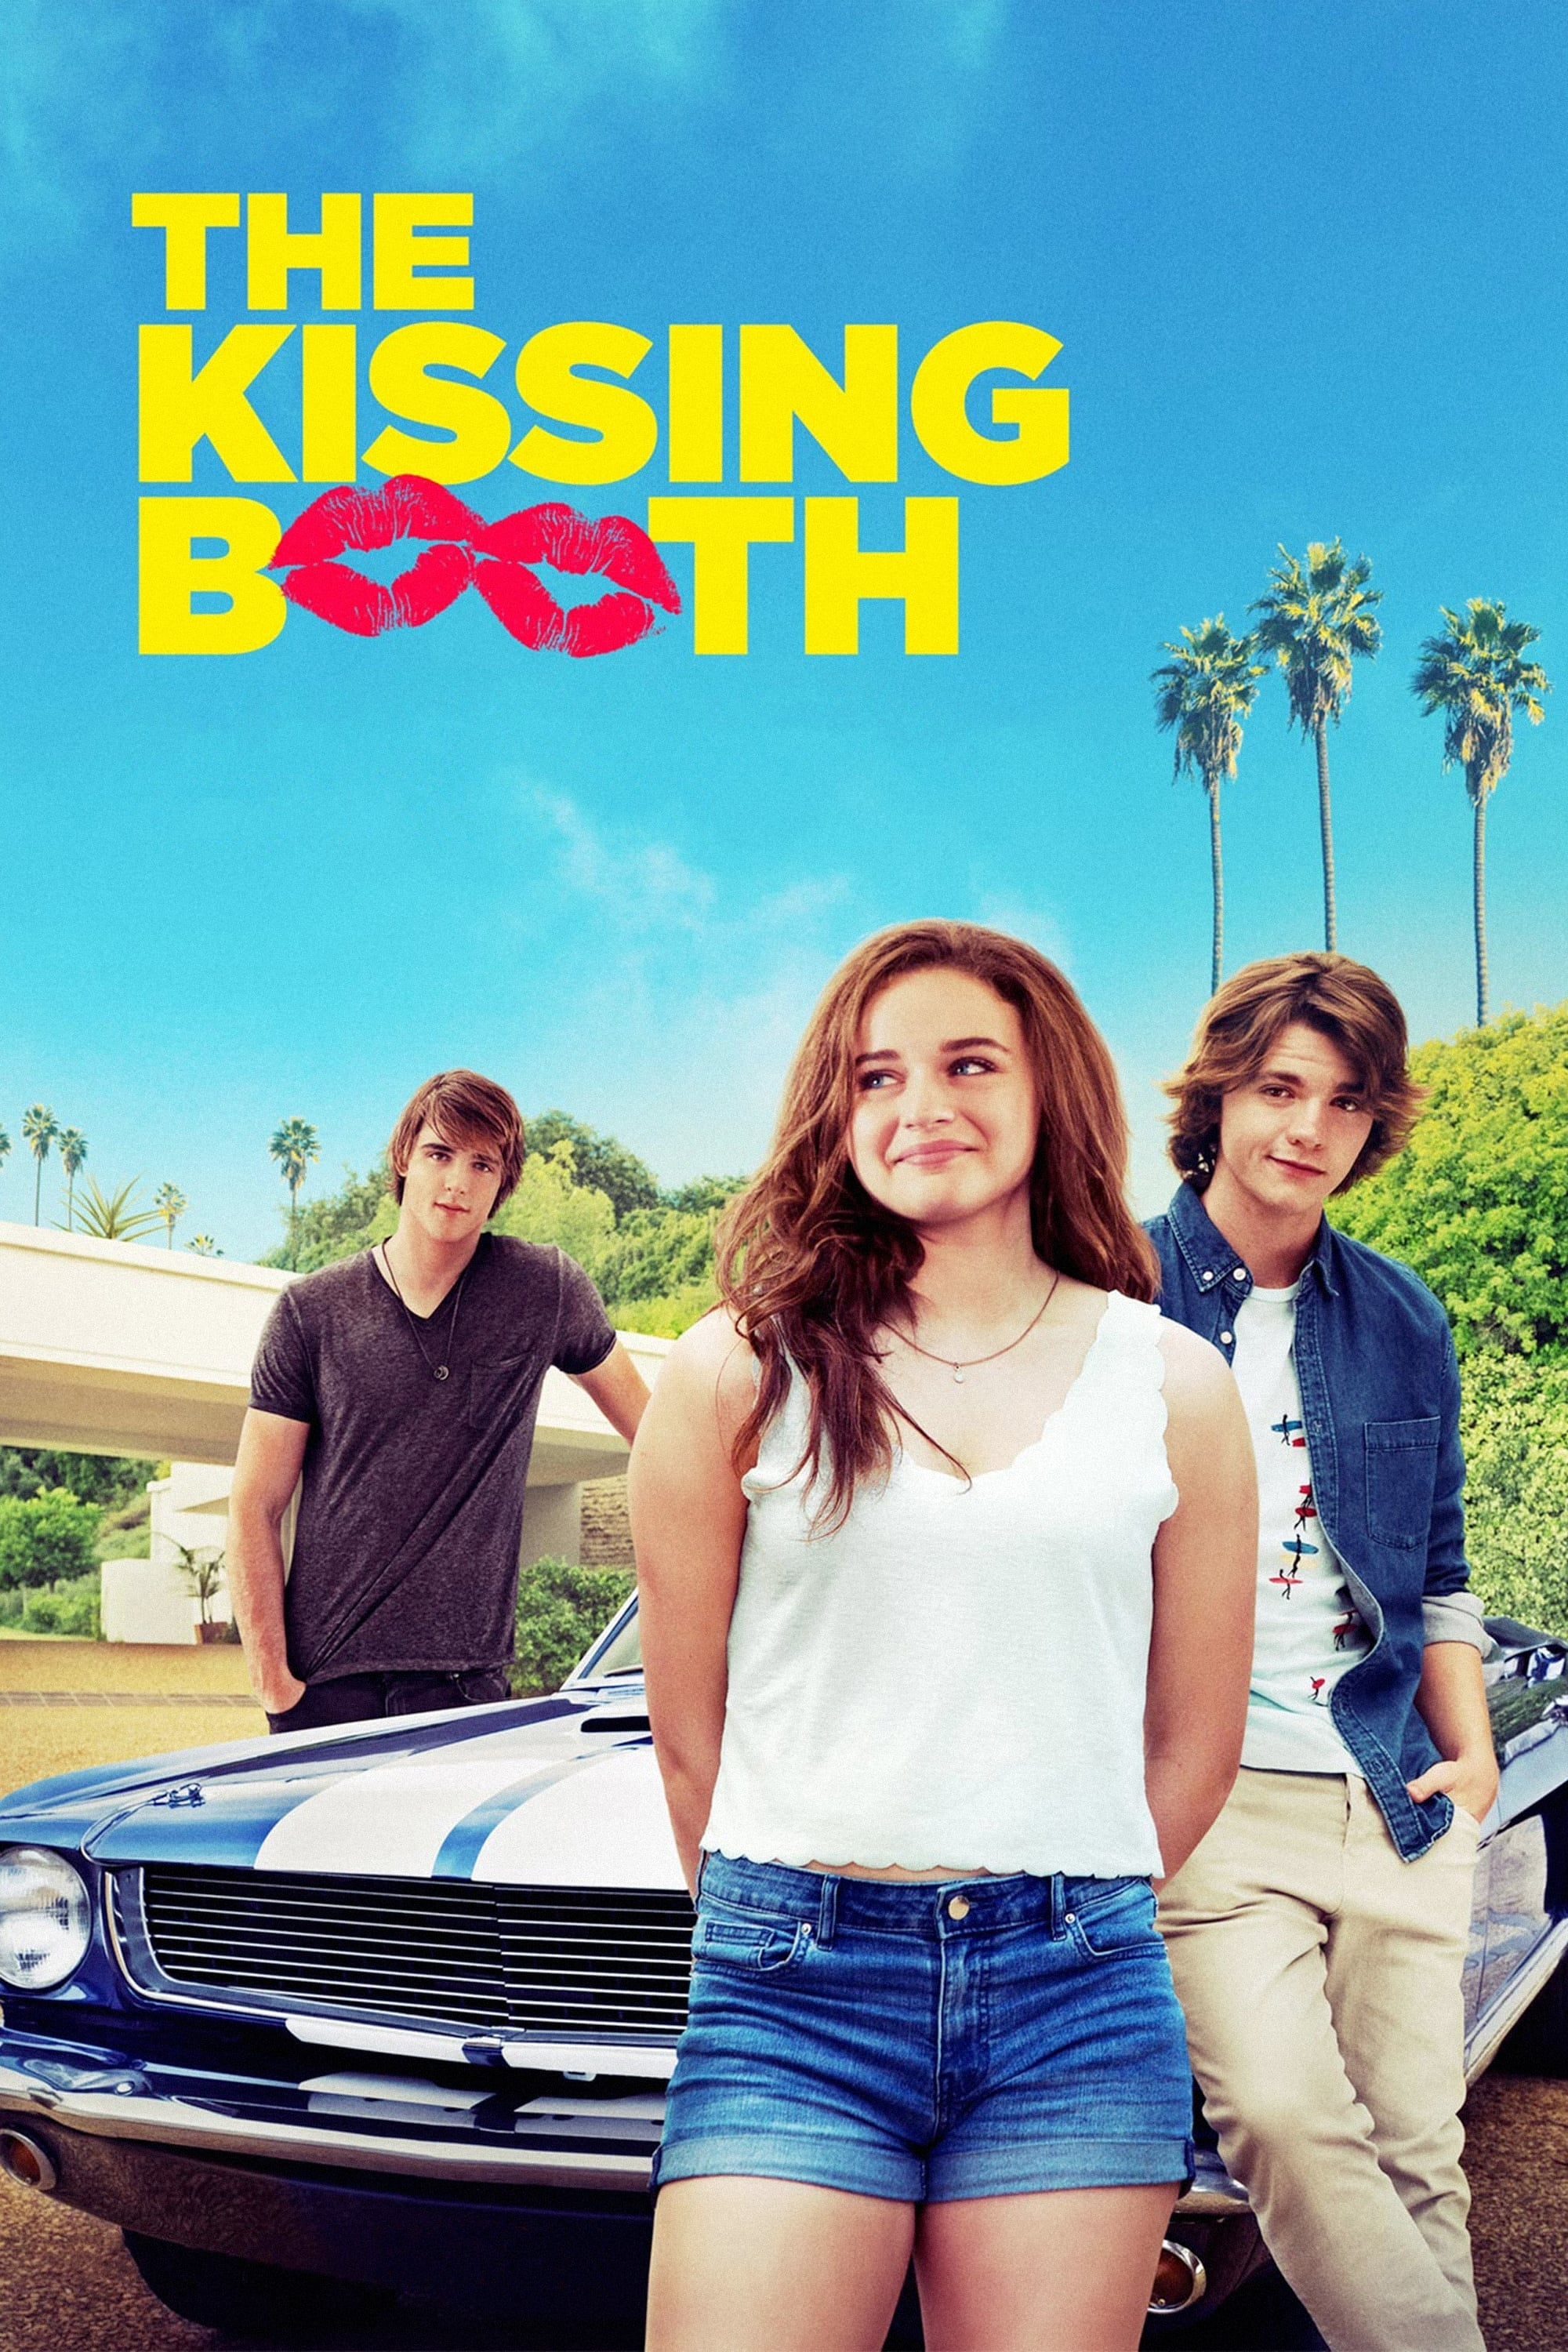 Mano pirmasis bučinys / The Kissing Booth (2018)